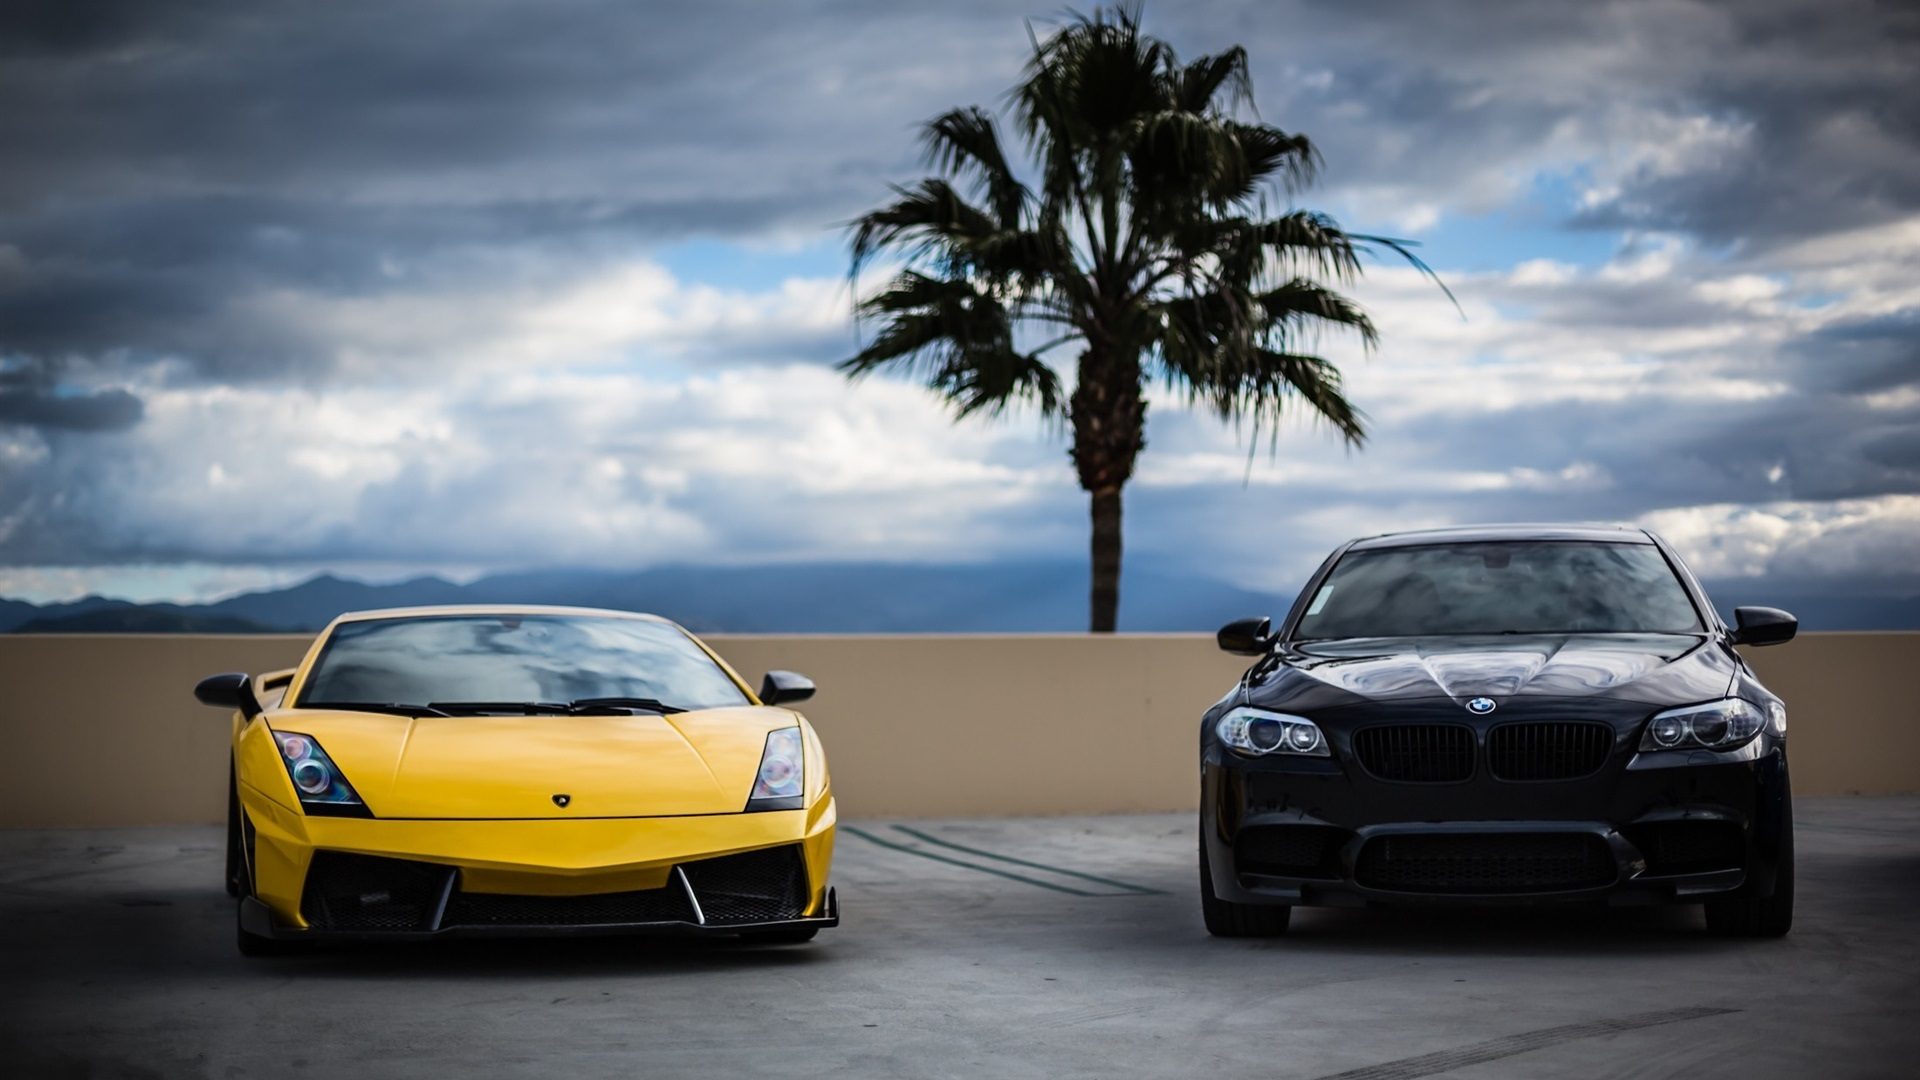 Wallpaper Yellow Lamborghini And Black Bmw Cars Front View 1920x1080 Full Hd 2k Picture Image